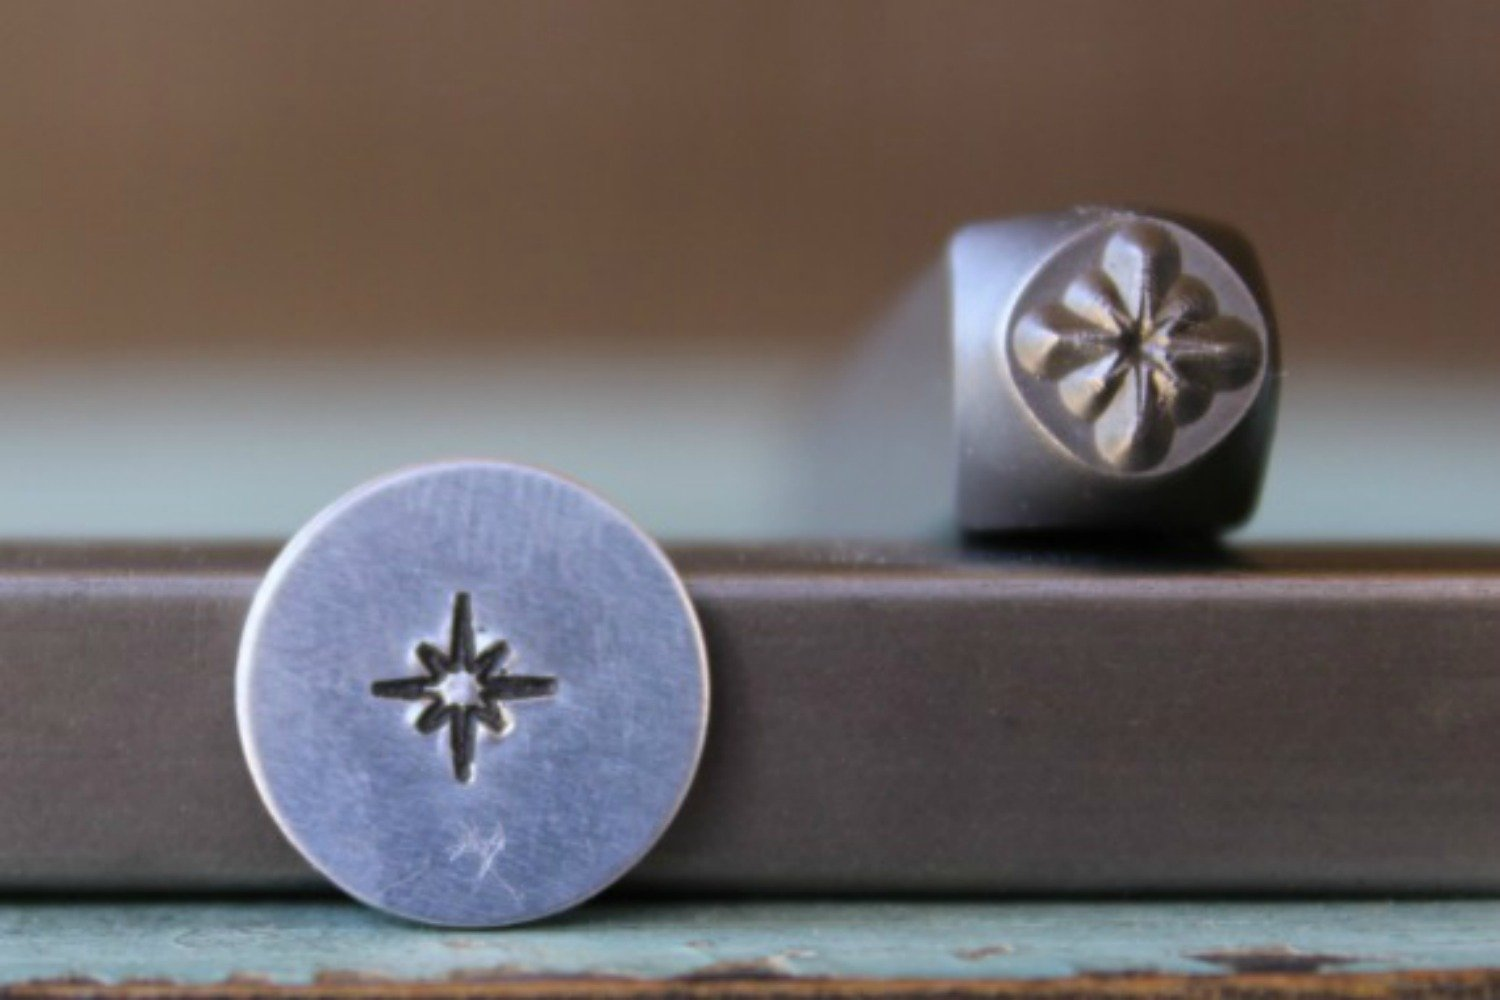 5mm Twinkle Star Metal Punch Design Jewelry Stamp